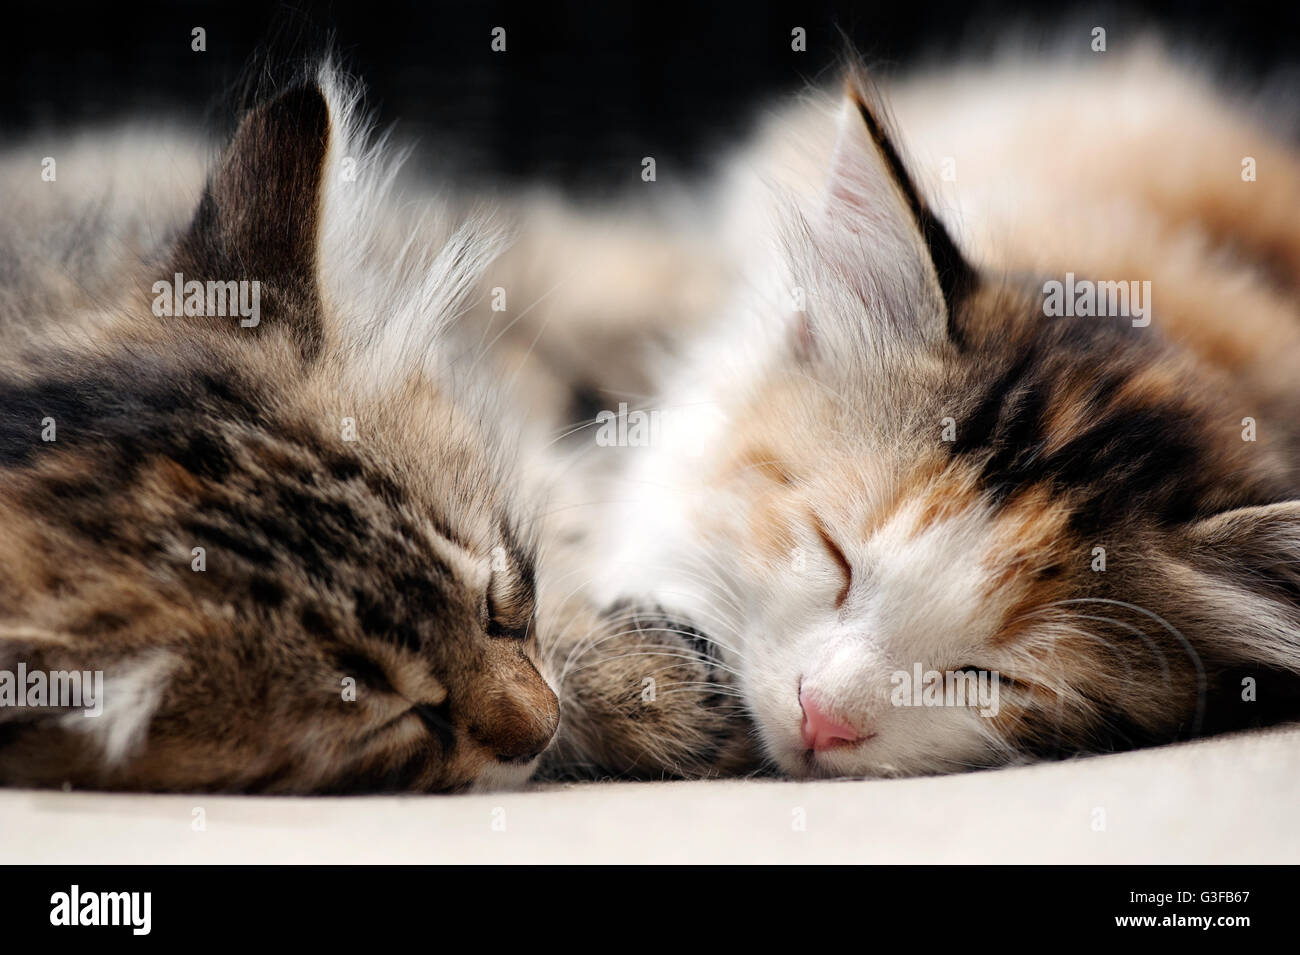 Sleeping Kittens - Stock Image